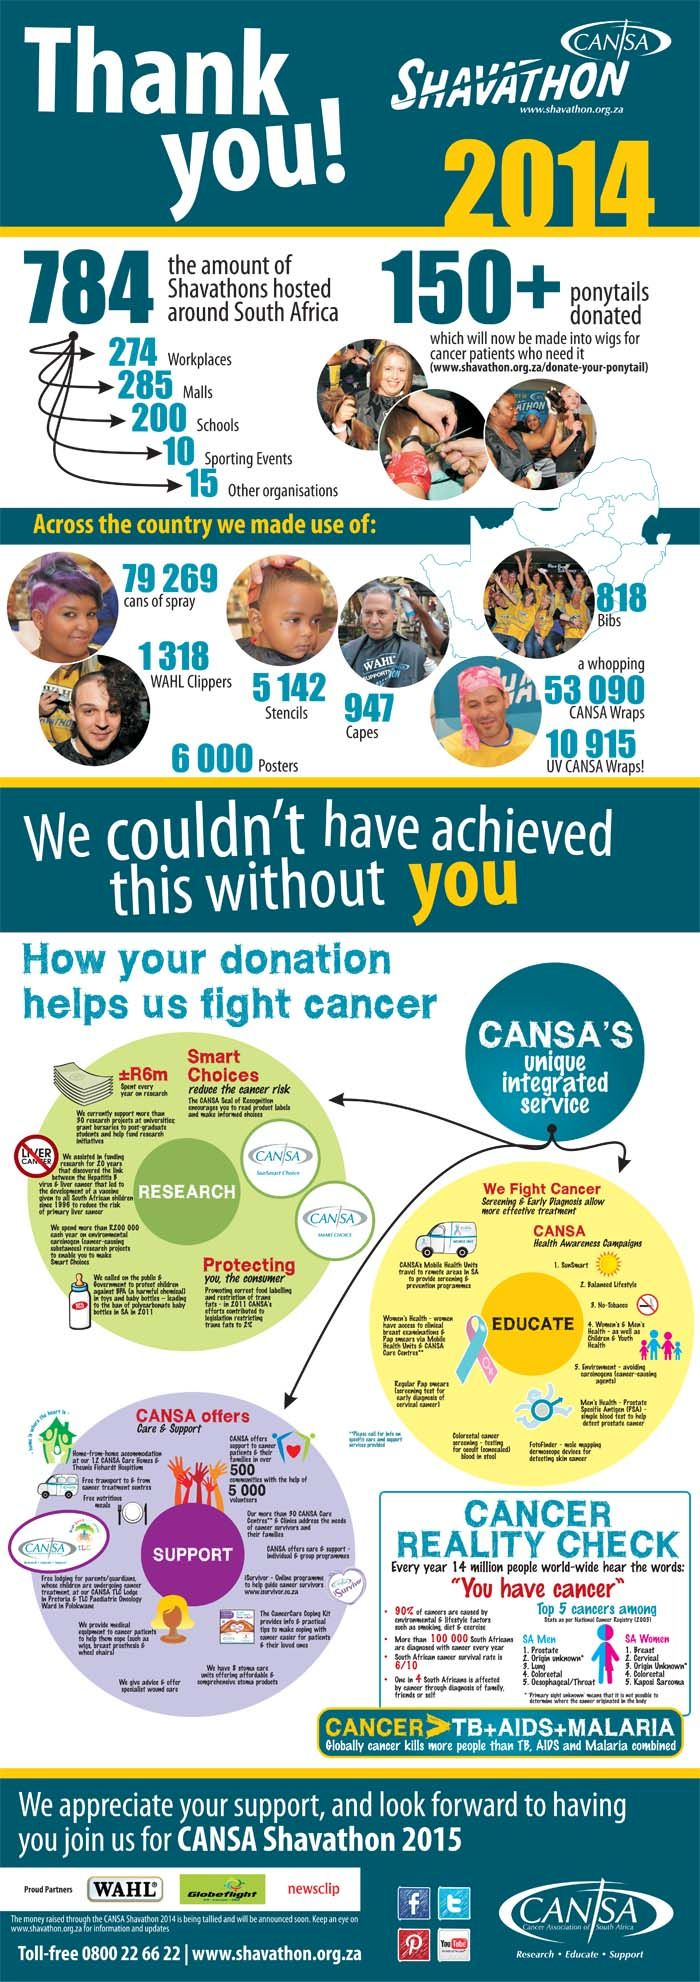 Thank You Shavathon Infographic 2014